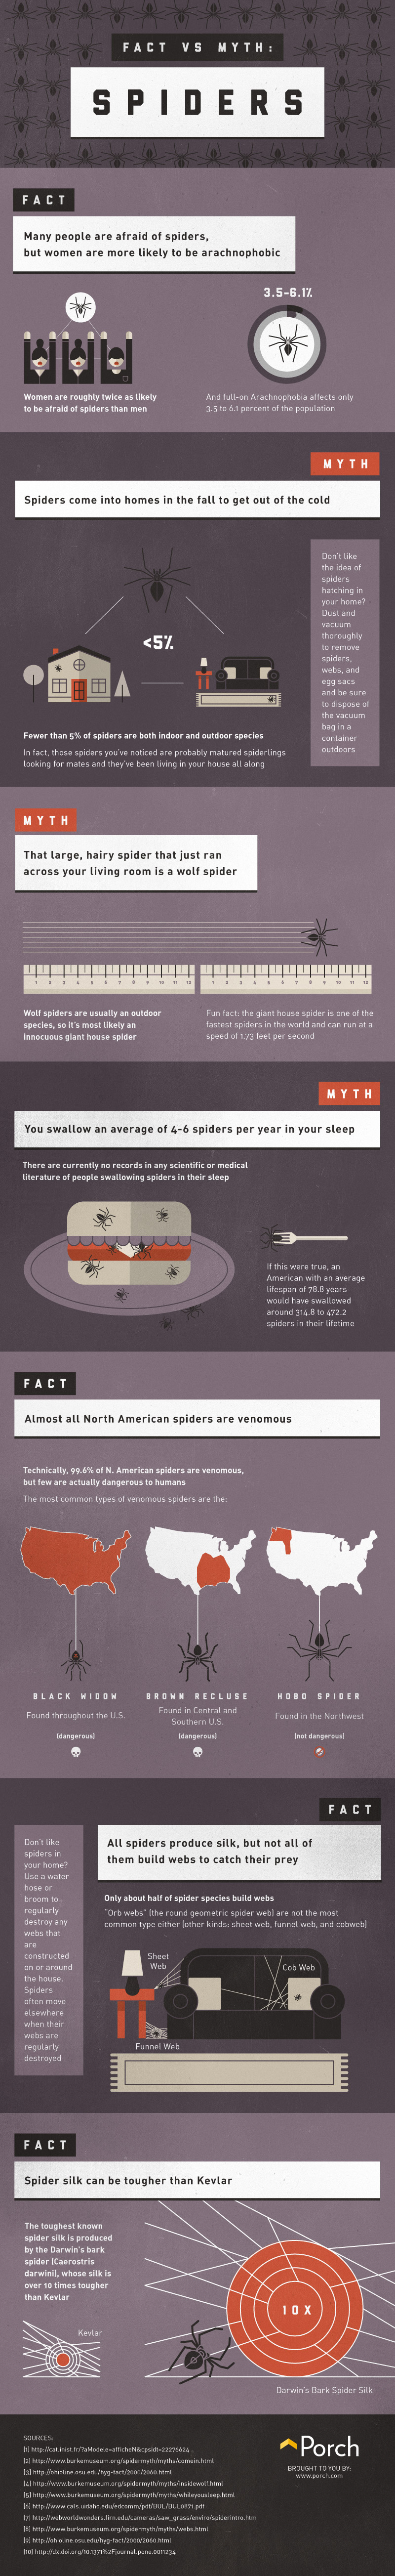 Facts Vs Myths About Spiders